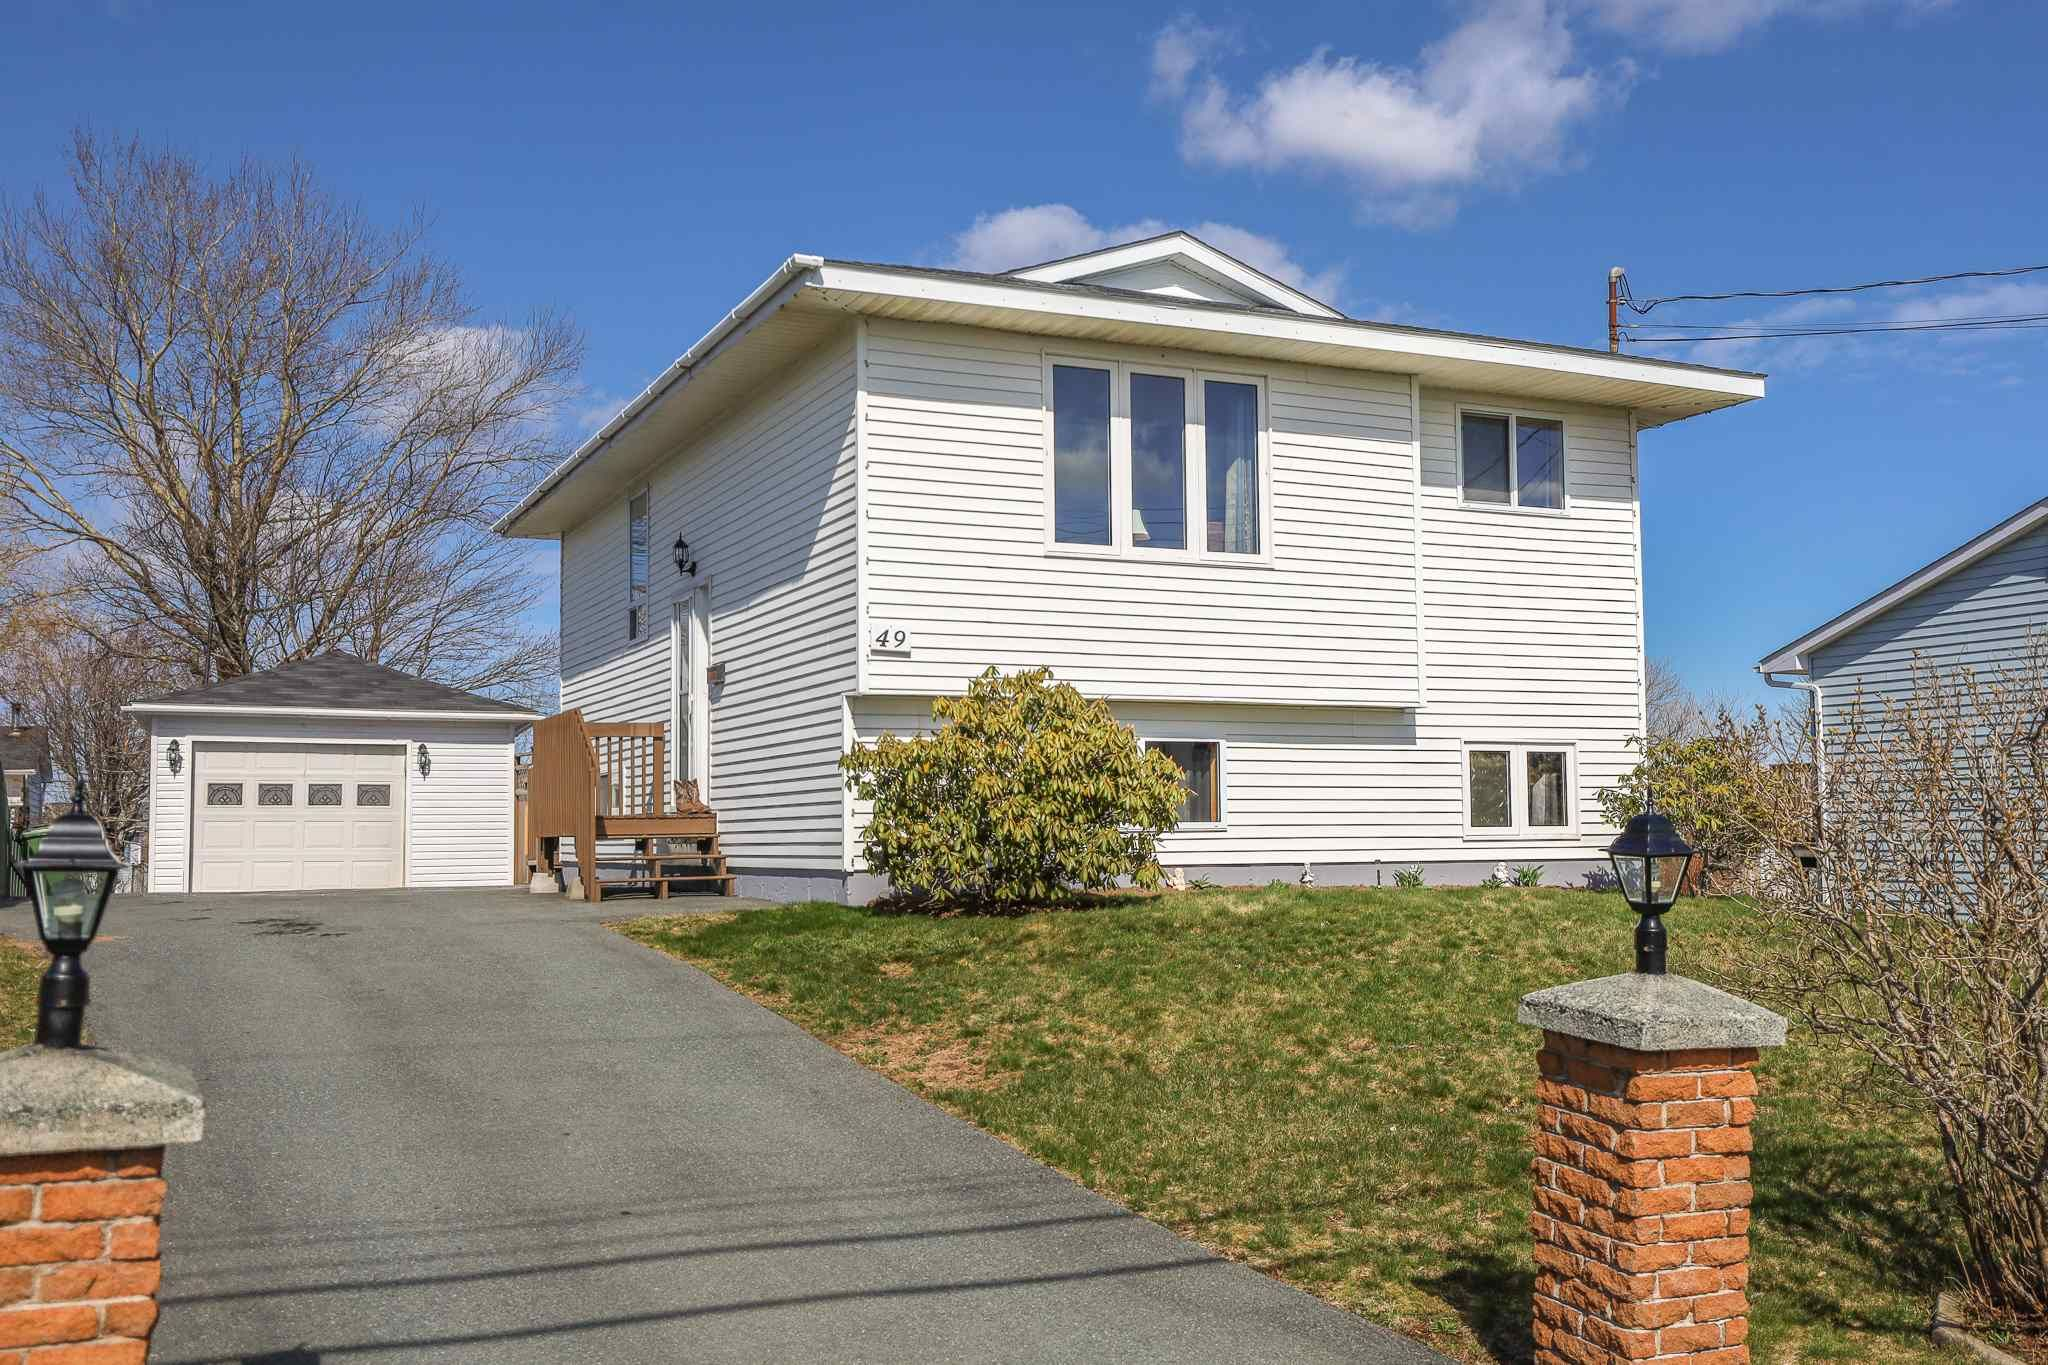 Main Photo: 49 Shrewsbury Road in Cole Harbour: 16-Colby Area Residential for sale (Halifax-Dartmouth)  : MLS®# 202108497